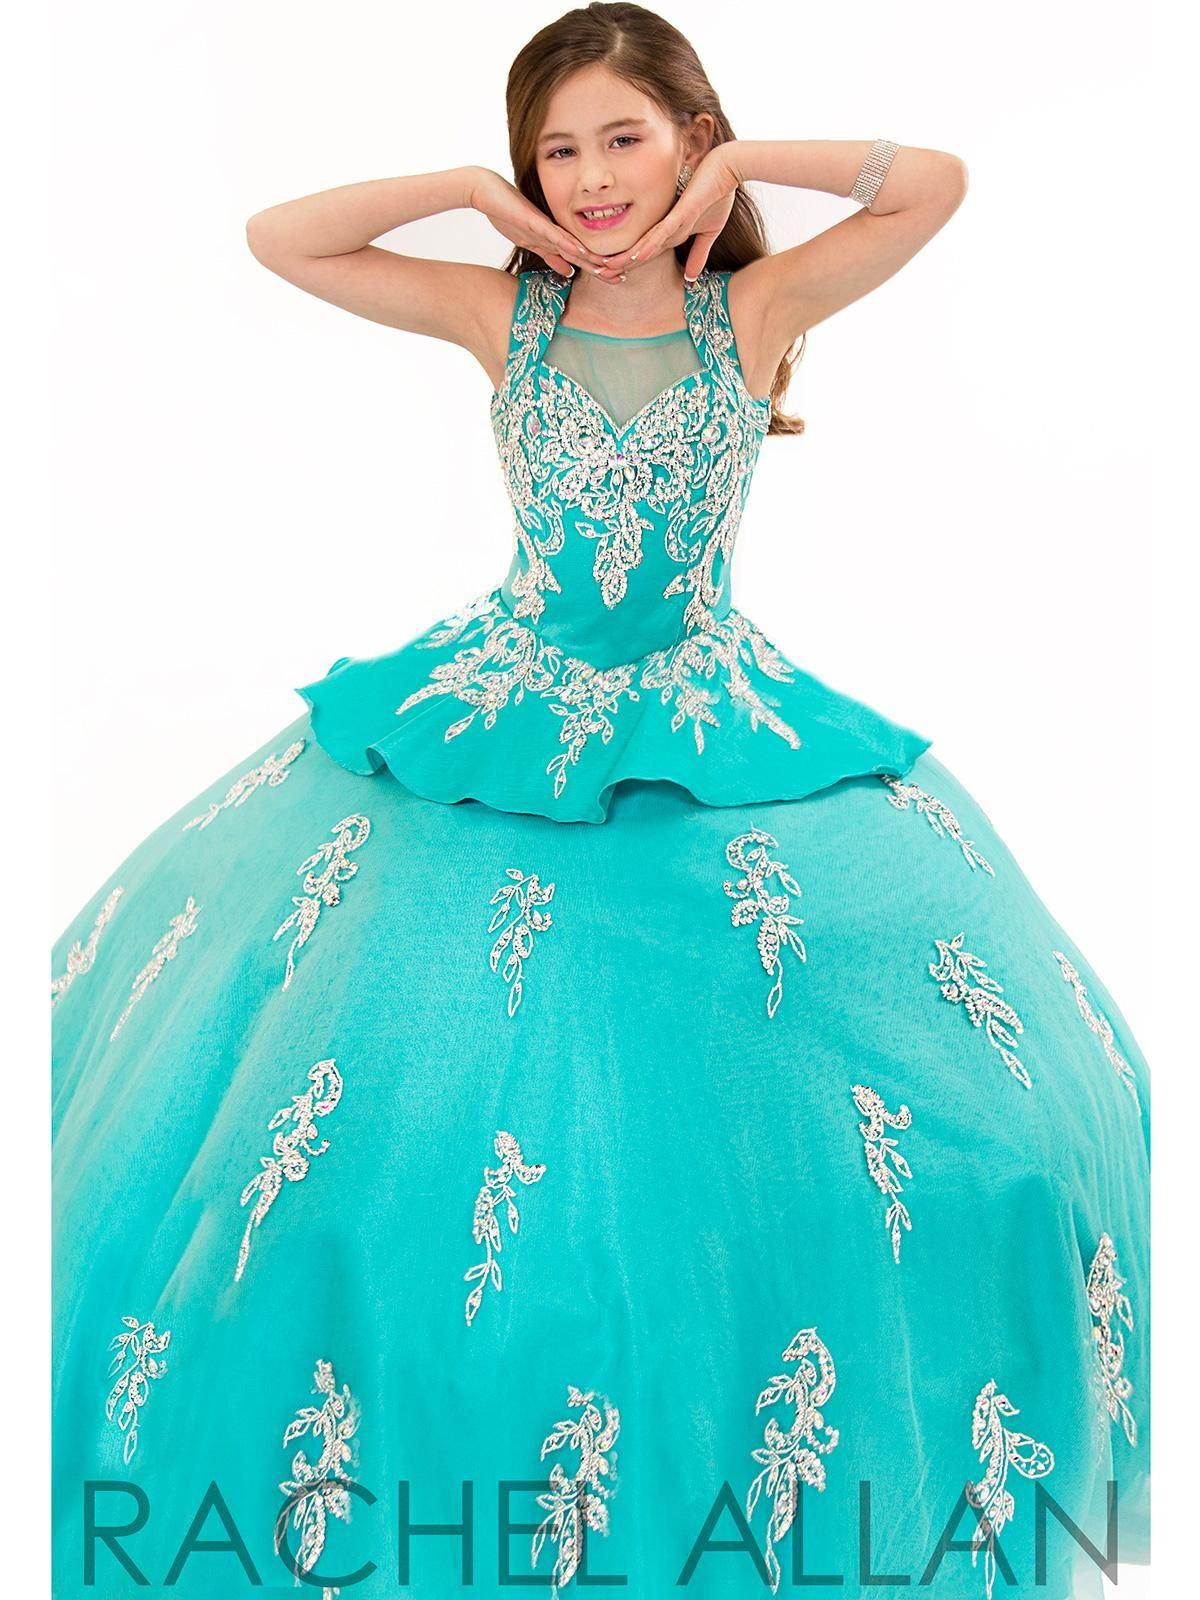 Pin on pageant dresses